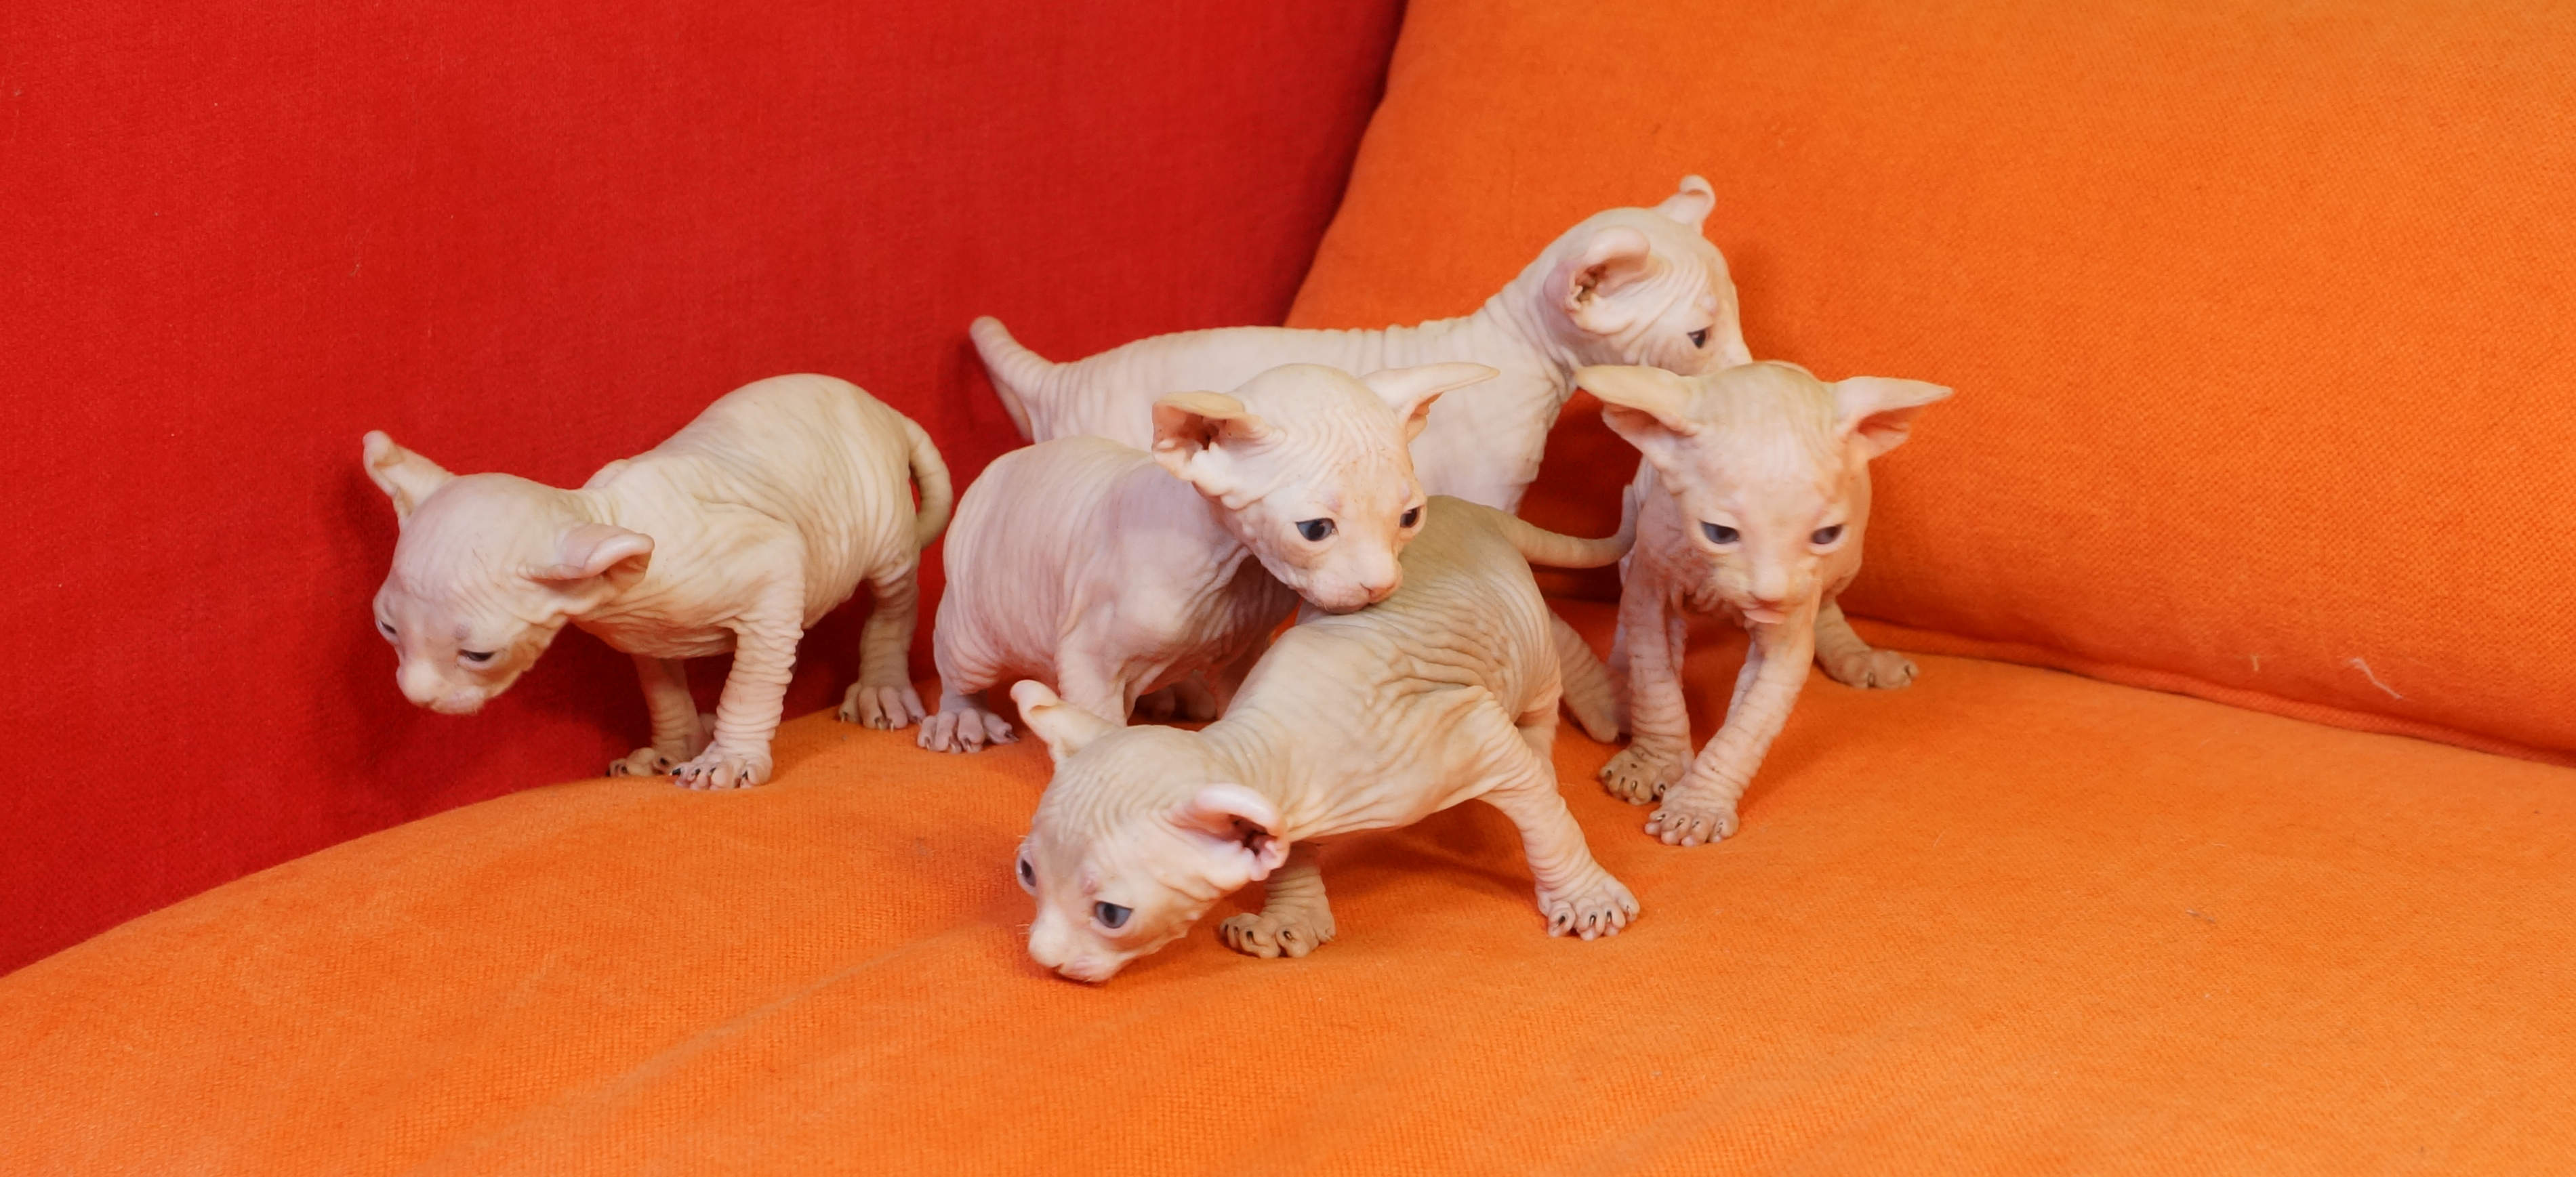 Curiouspinks - Breeder of Sphynx, Bambino, Elf and Dwelf - Curiouspinks